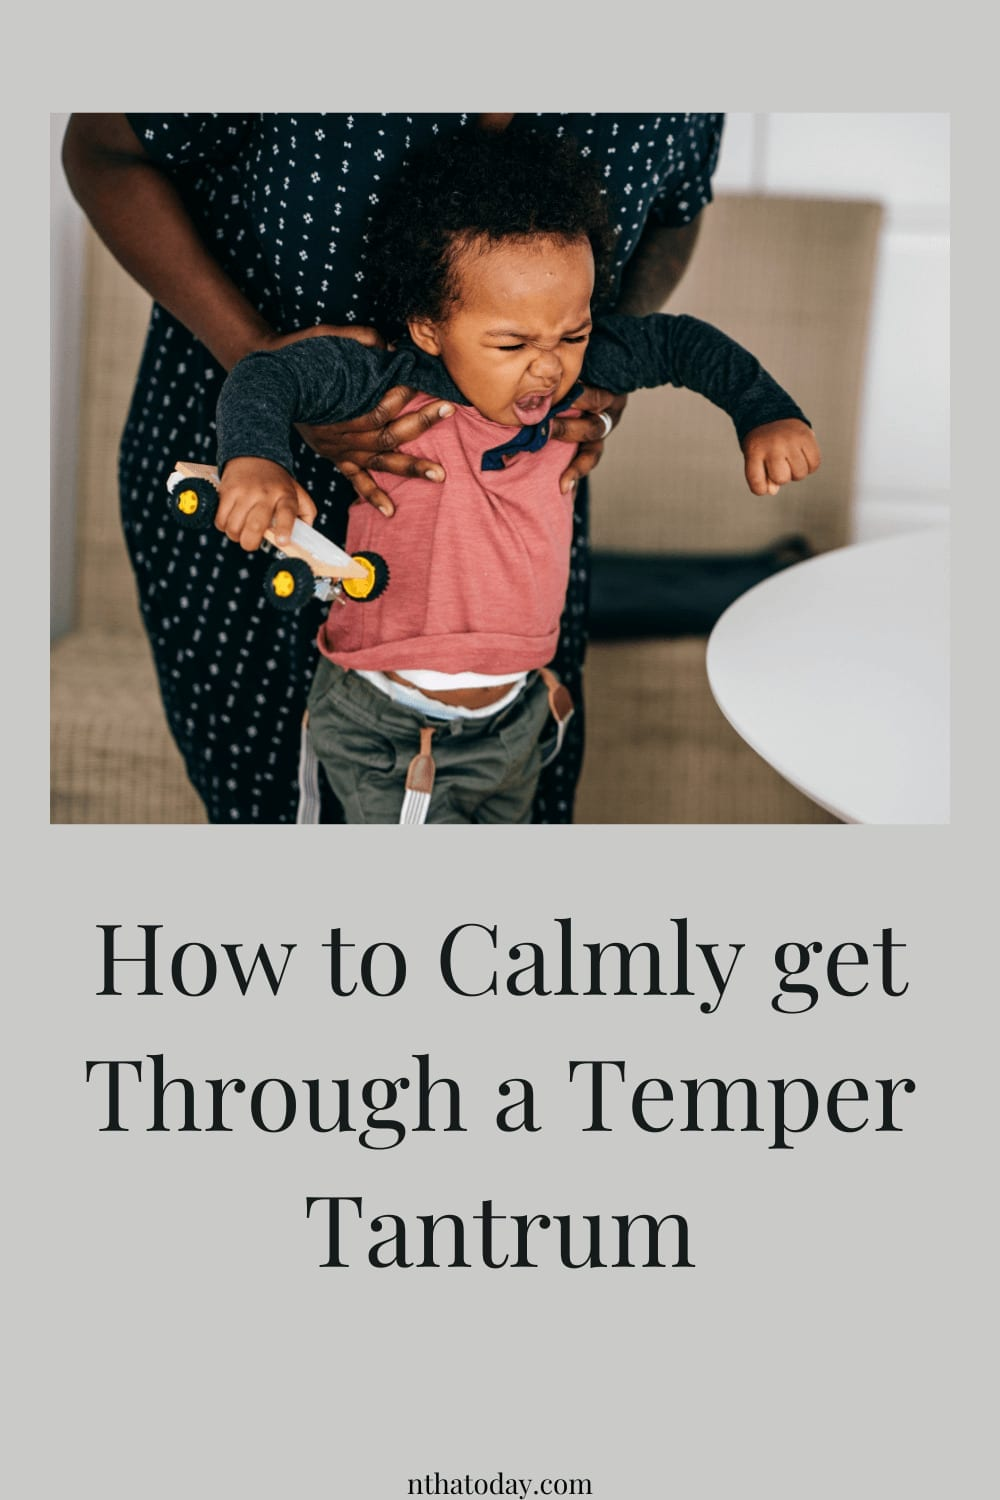 how to deal with a temper tantrum